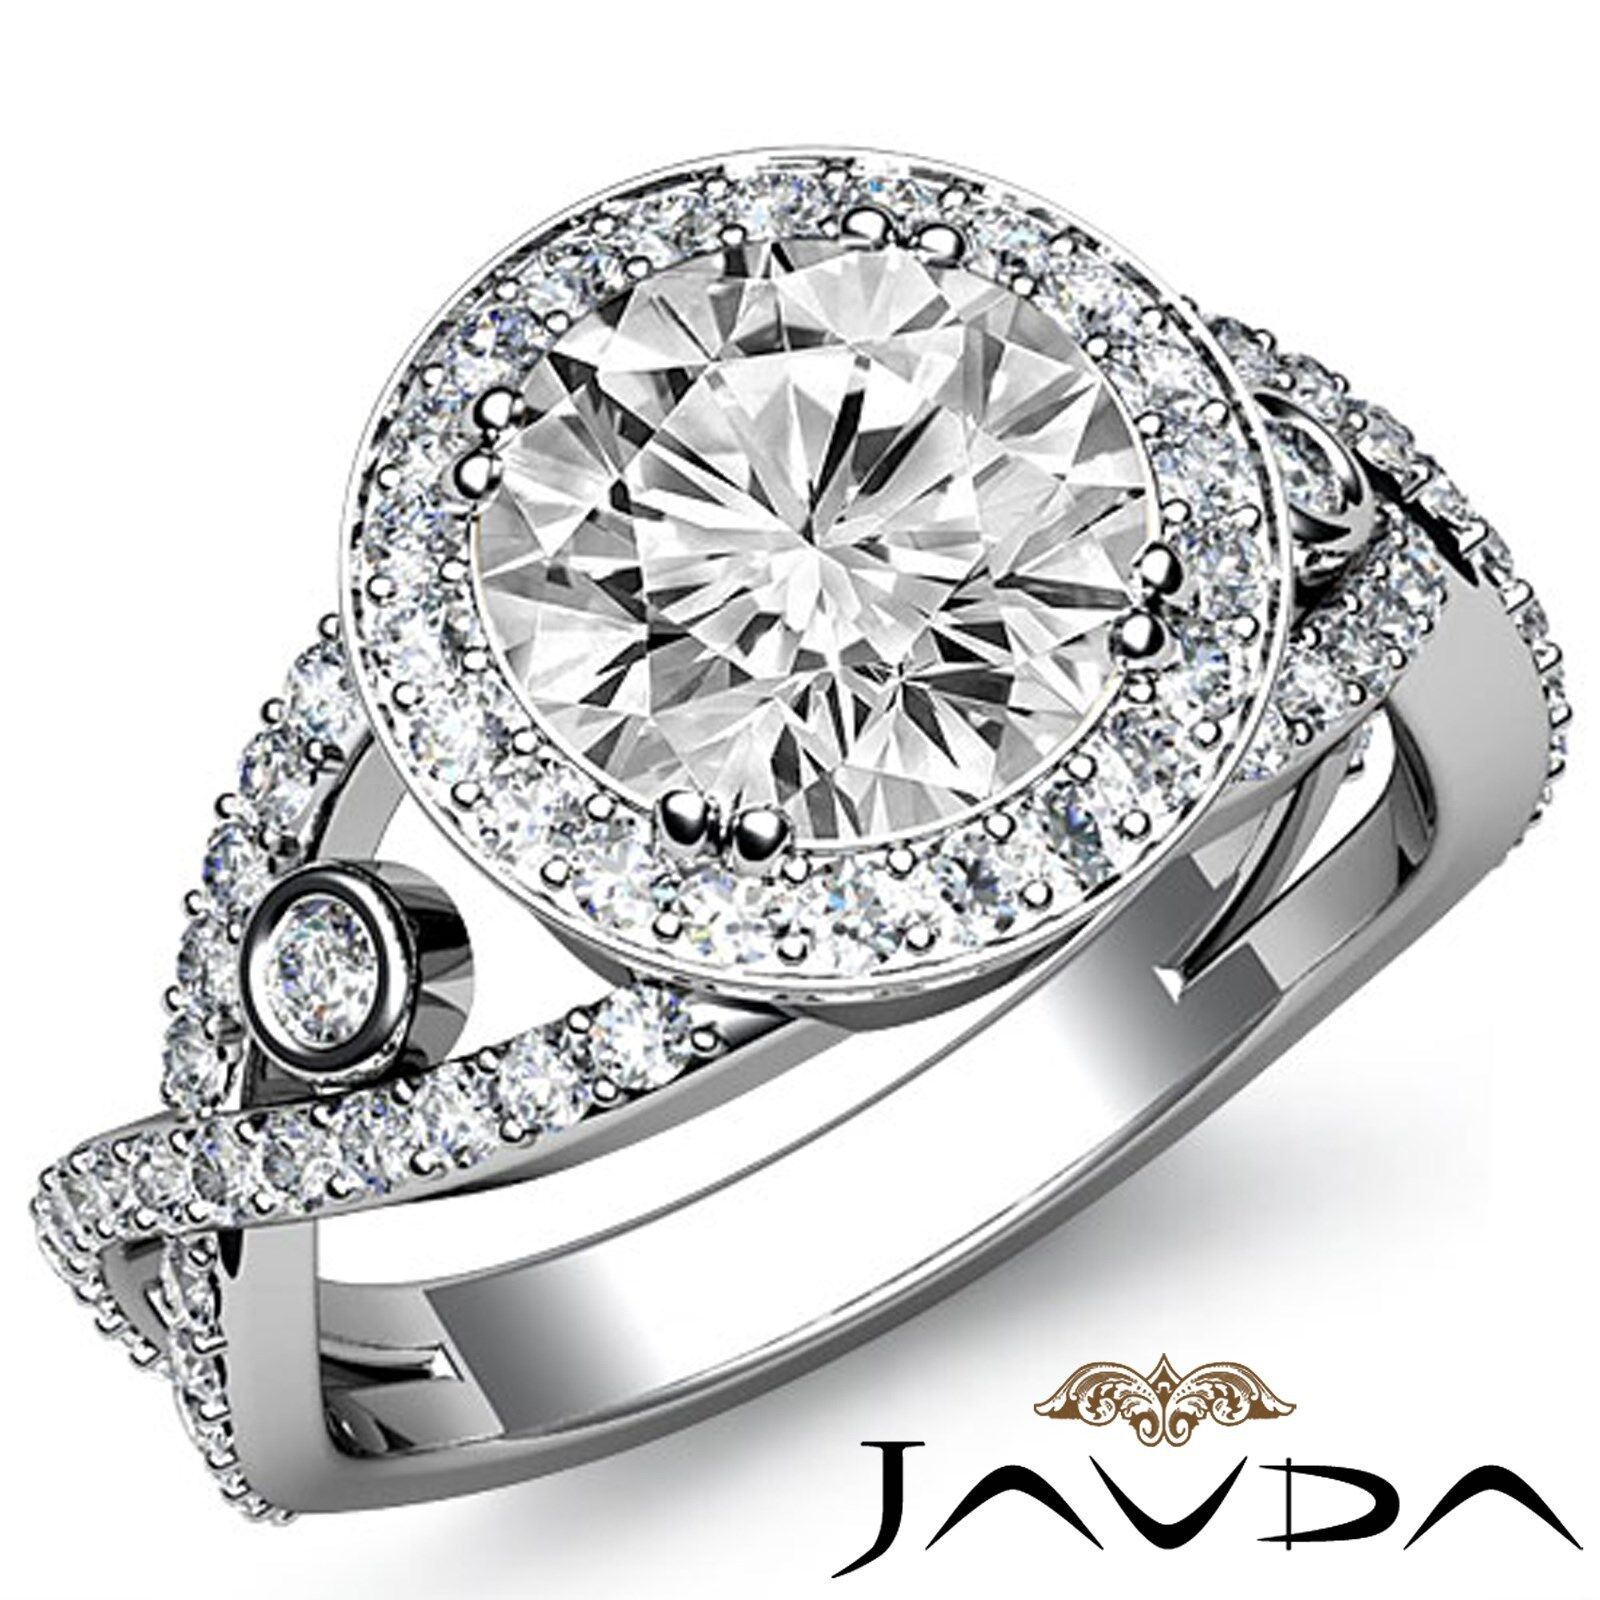 Bezel Set Cross Shank Halo Round Diamond Engagement Ring GIA F Color VS1 2.9 Ct